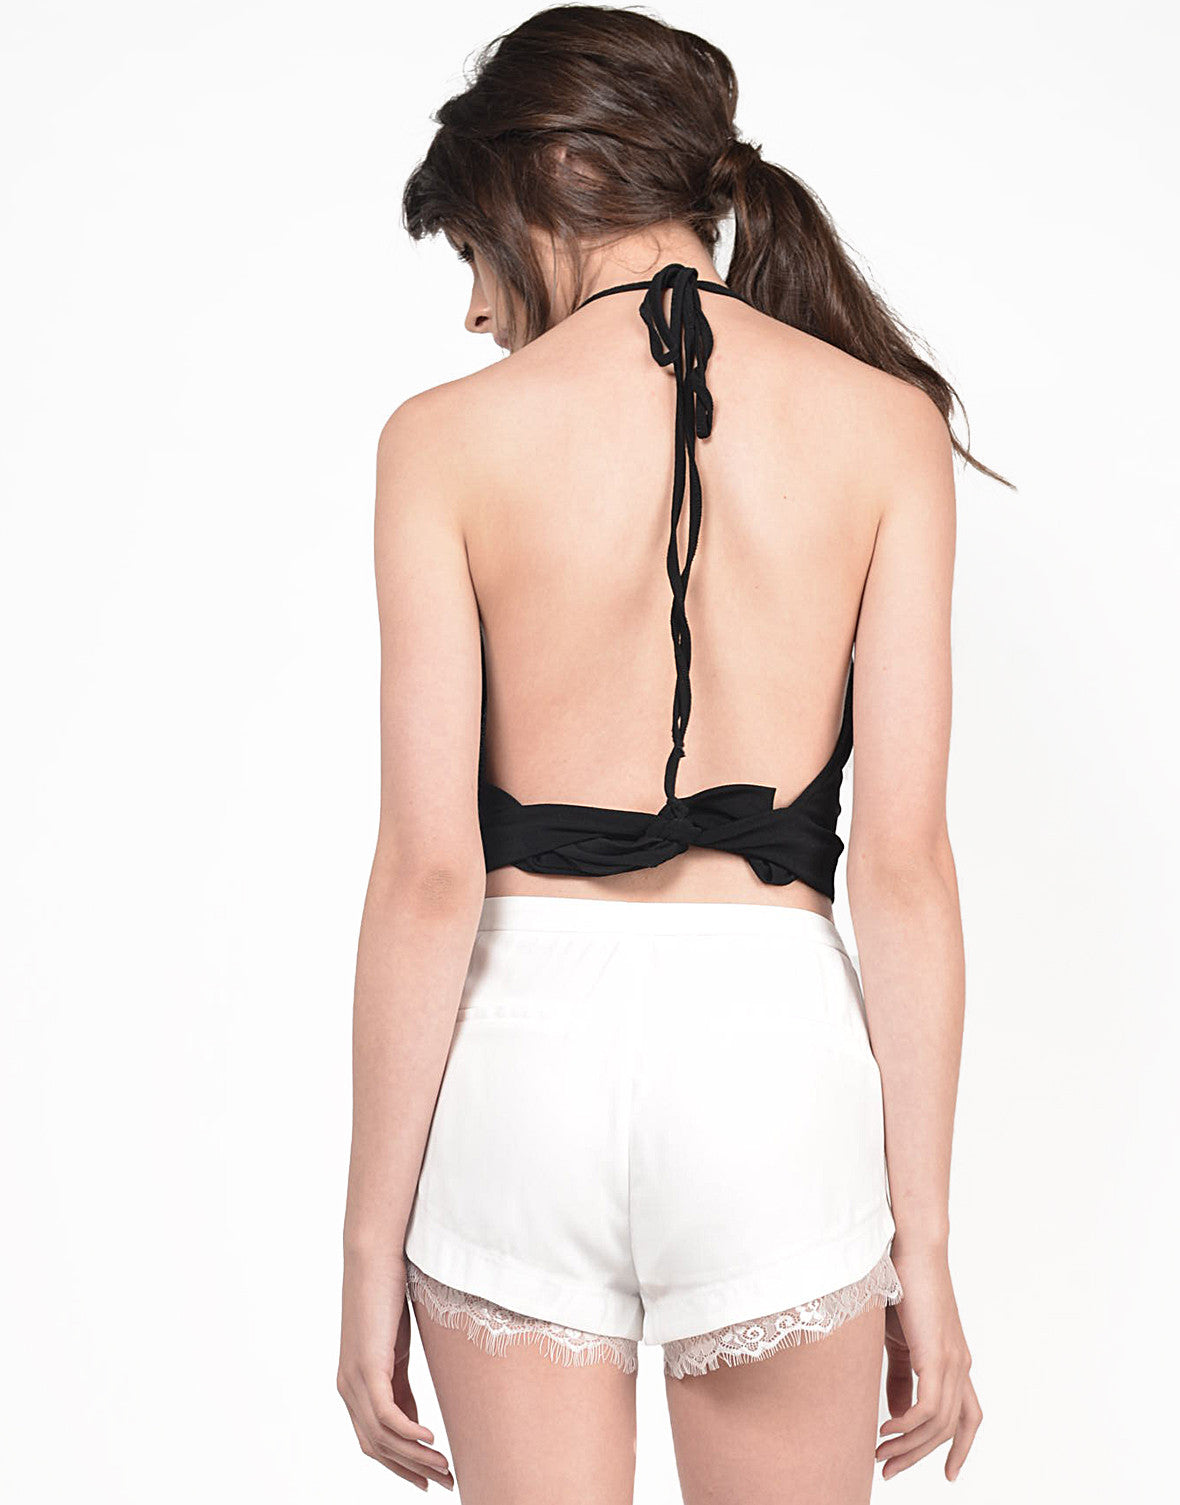 Back View of Overlapping Keyhole Halter Top